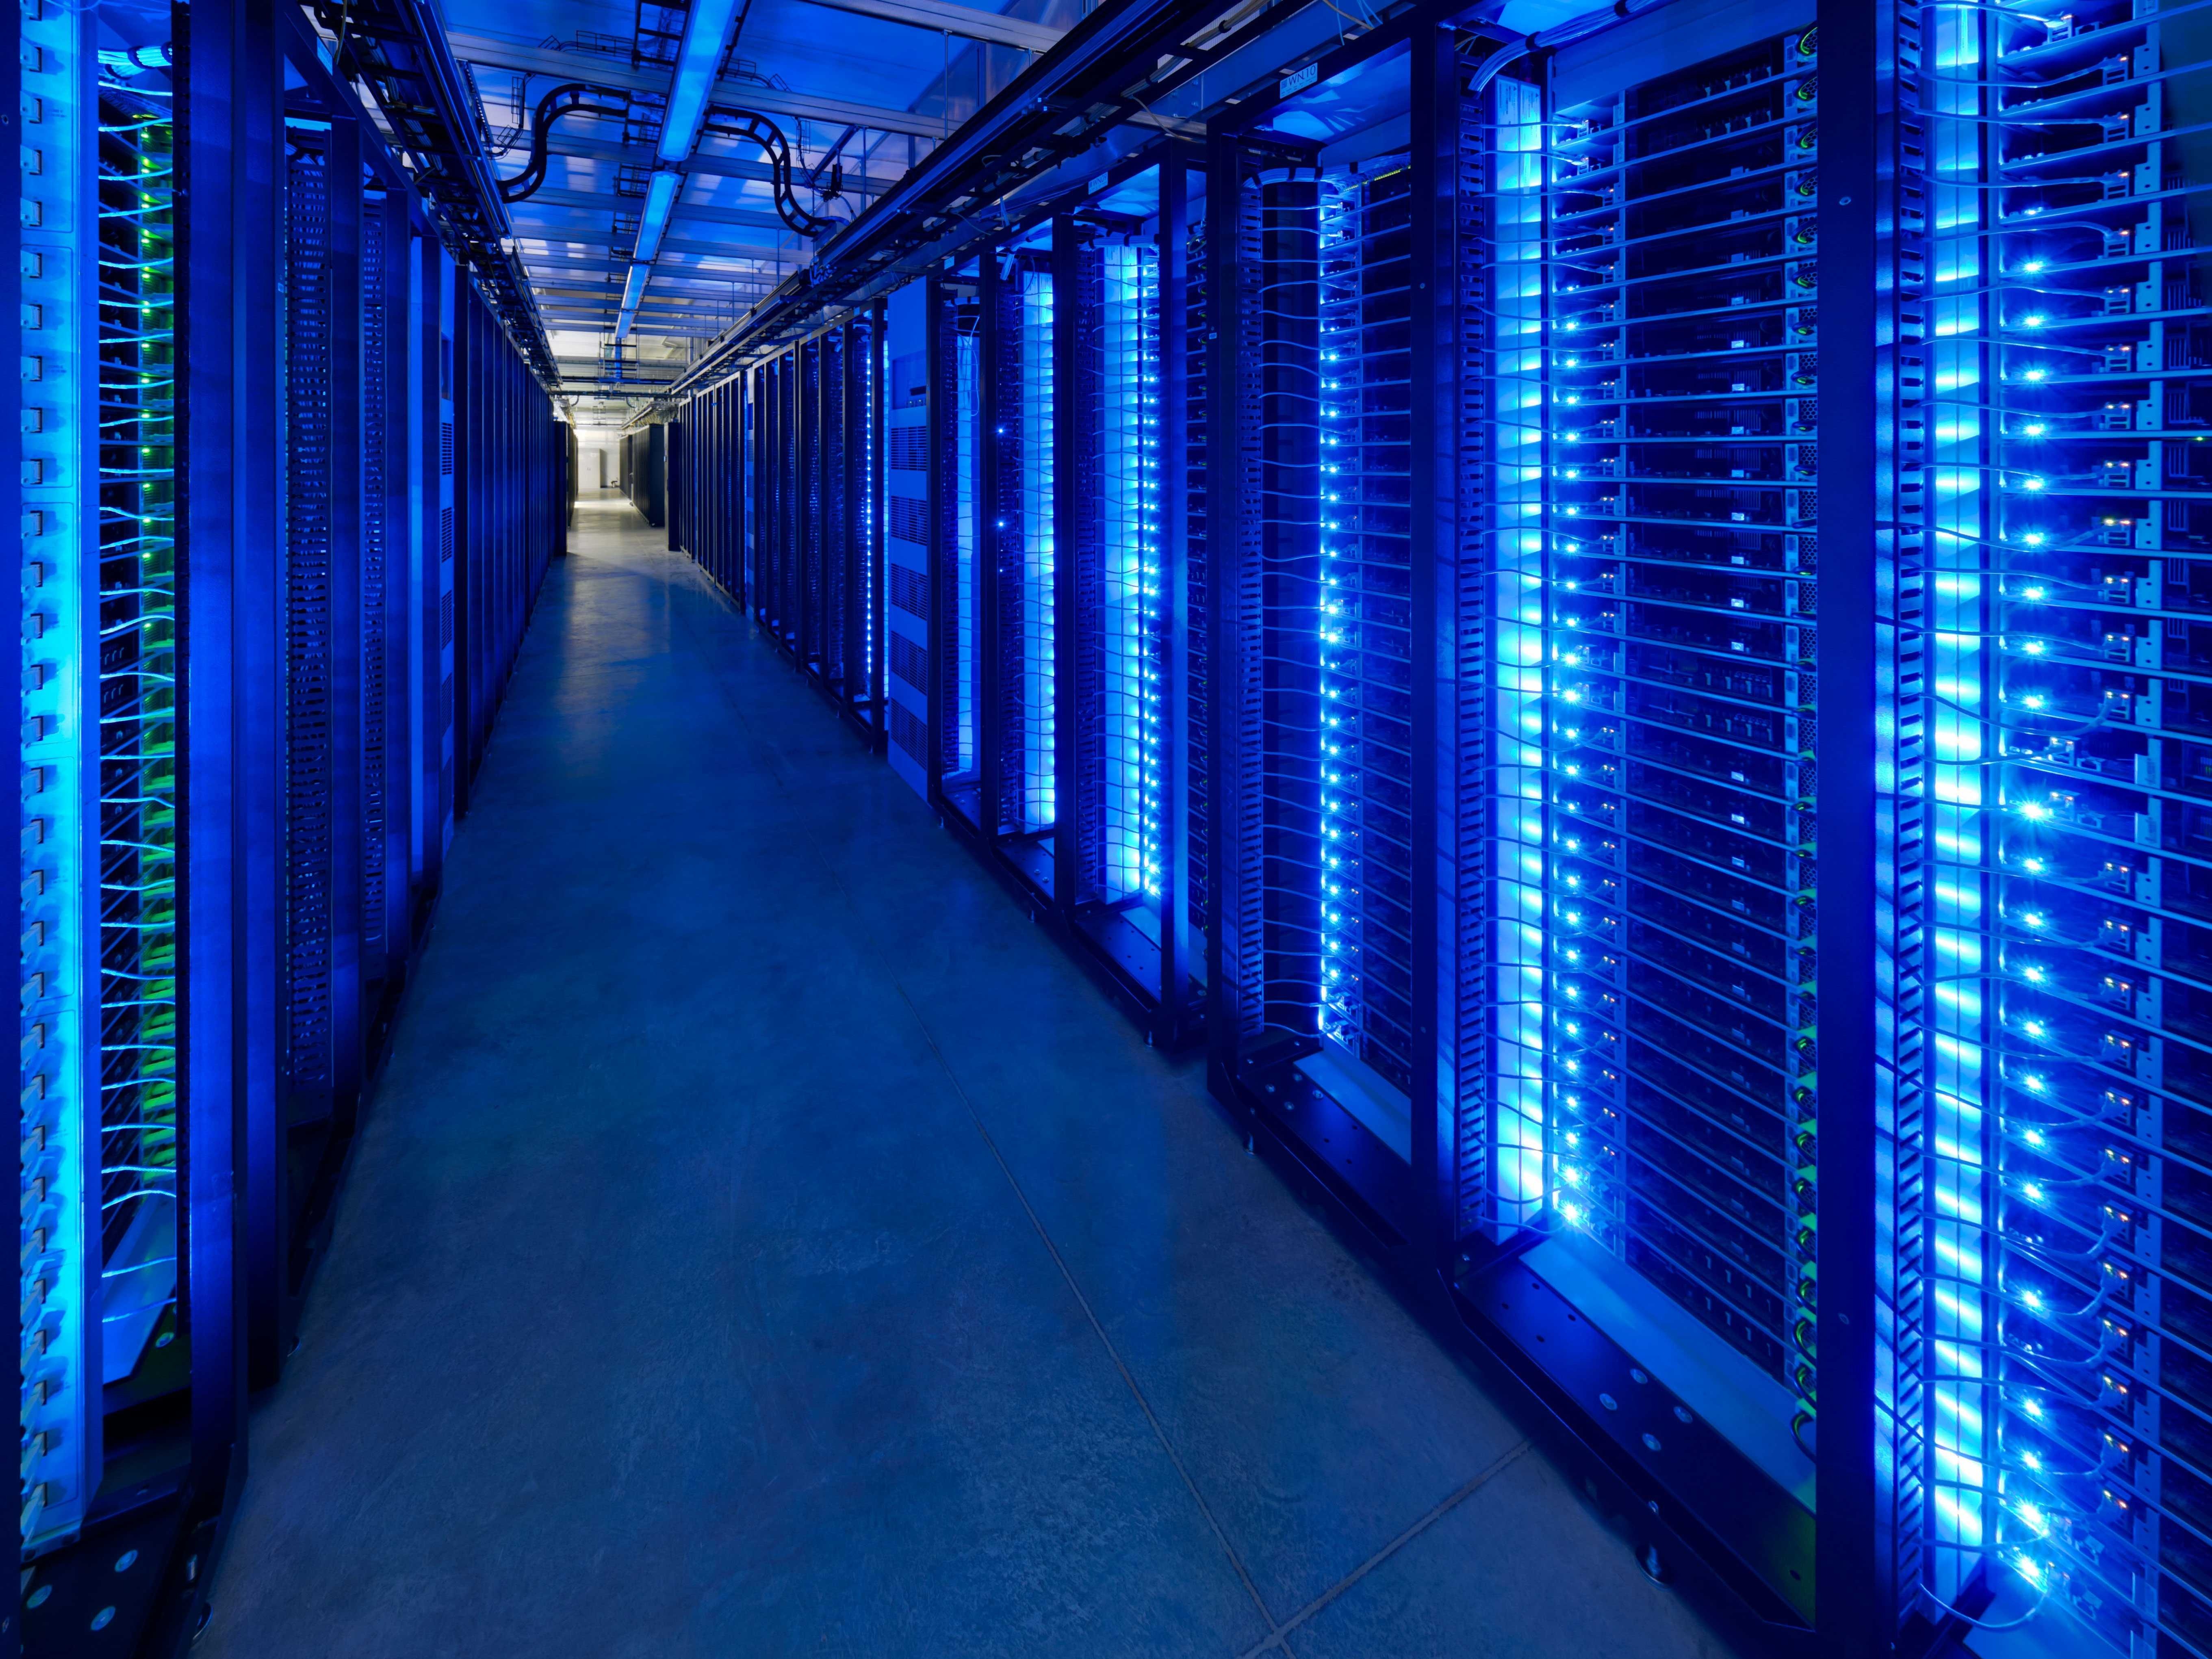 big-data-will-drive-the-next-phase-of-innovation-in-mobile-computing.jpg